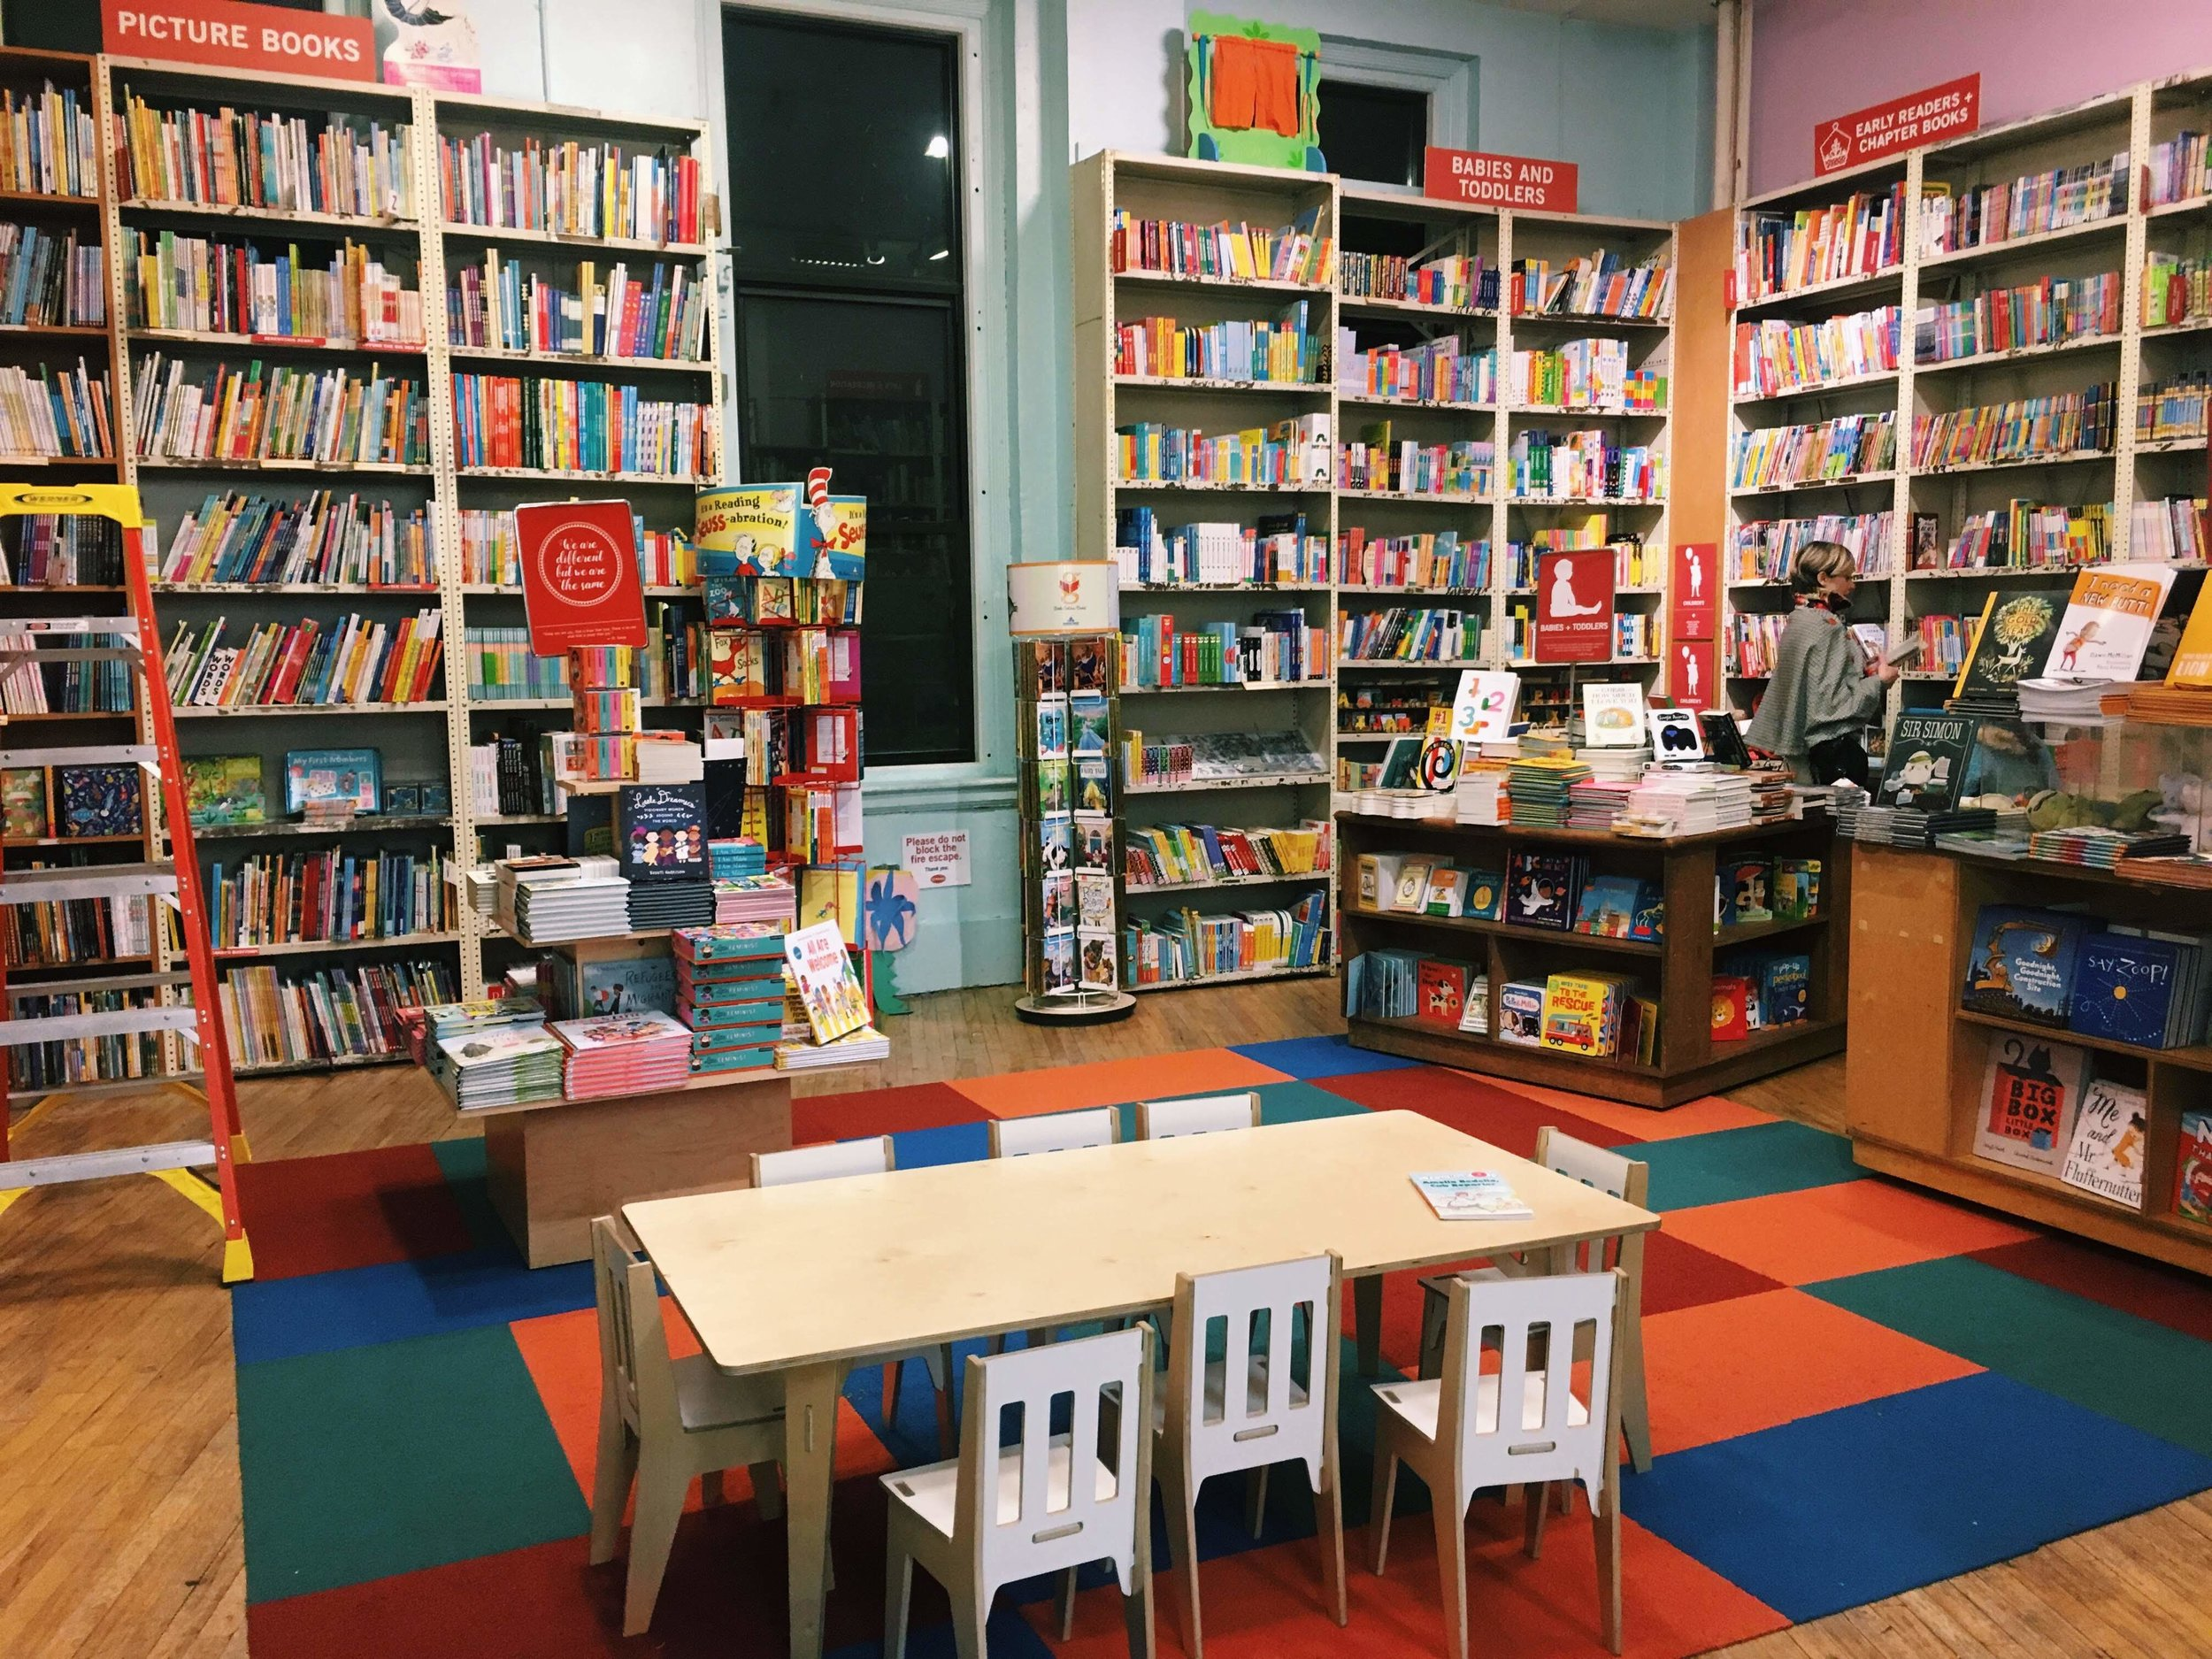 the adorable children's section!